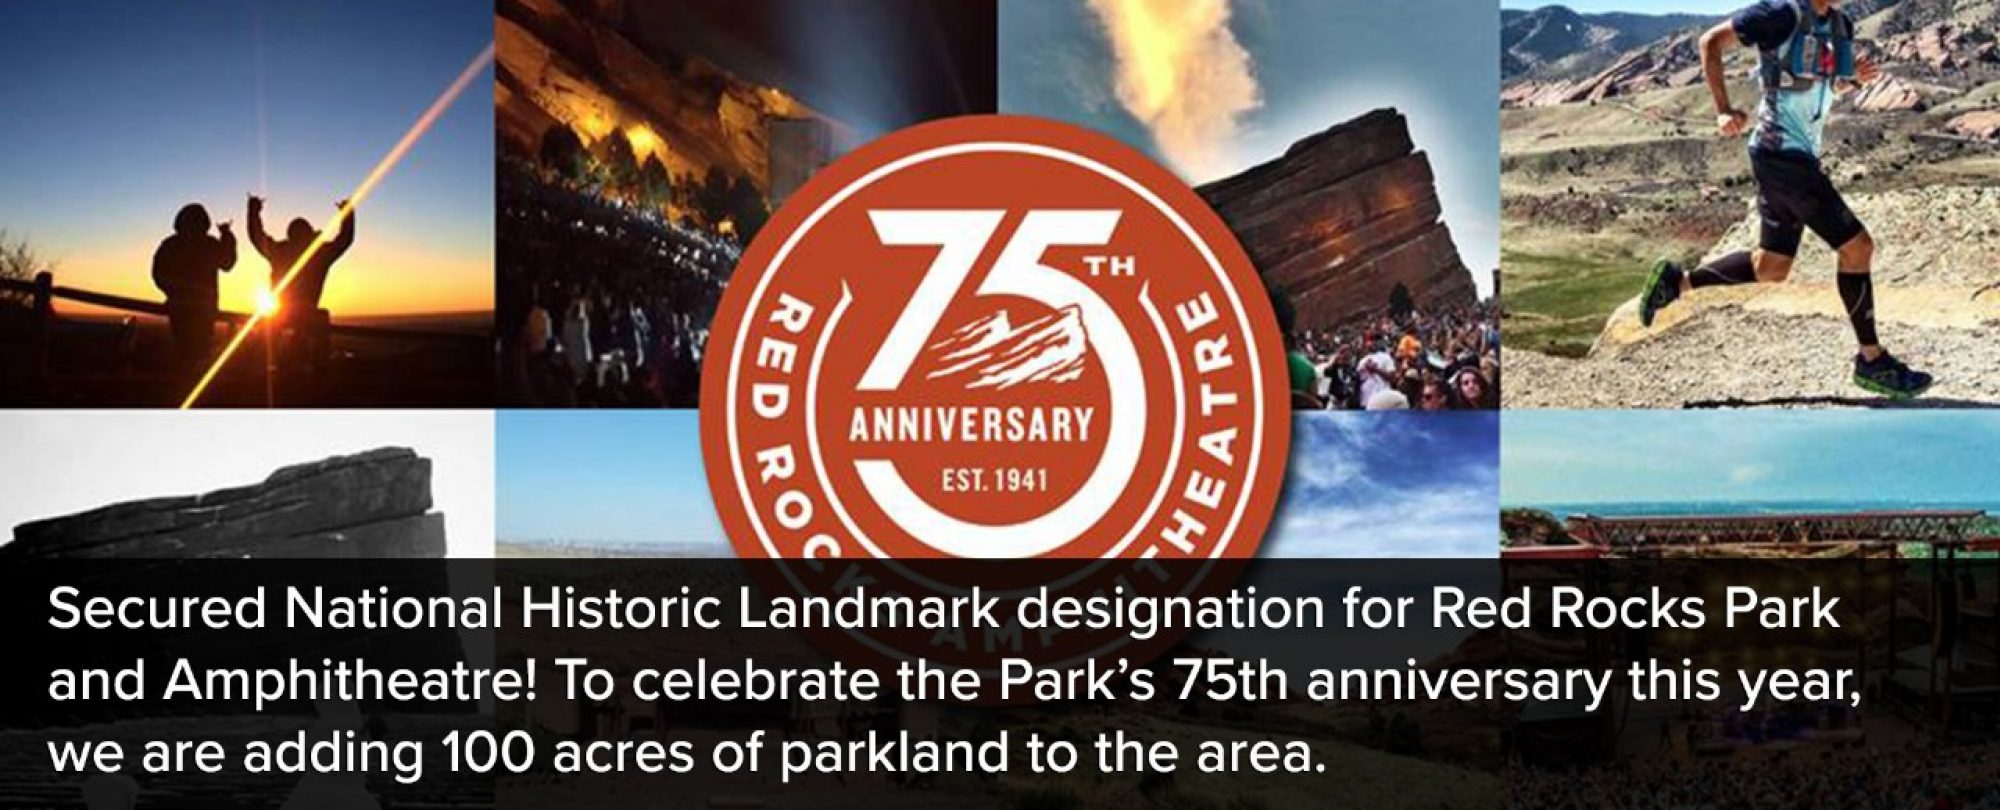 Photo graphic advertisement to celebrate 75th anniversary of Red Rocks Park and Amphitheatre. Denver secured National Historic Landmark Status of the park and amphitheatre. To celebrate the Park's 75th anniversary, Denver added 100 acres of parkland to the area.